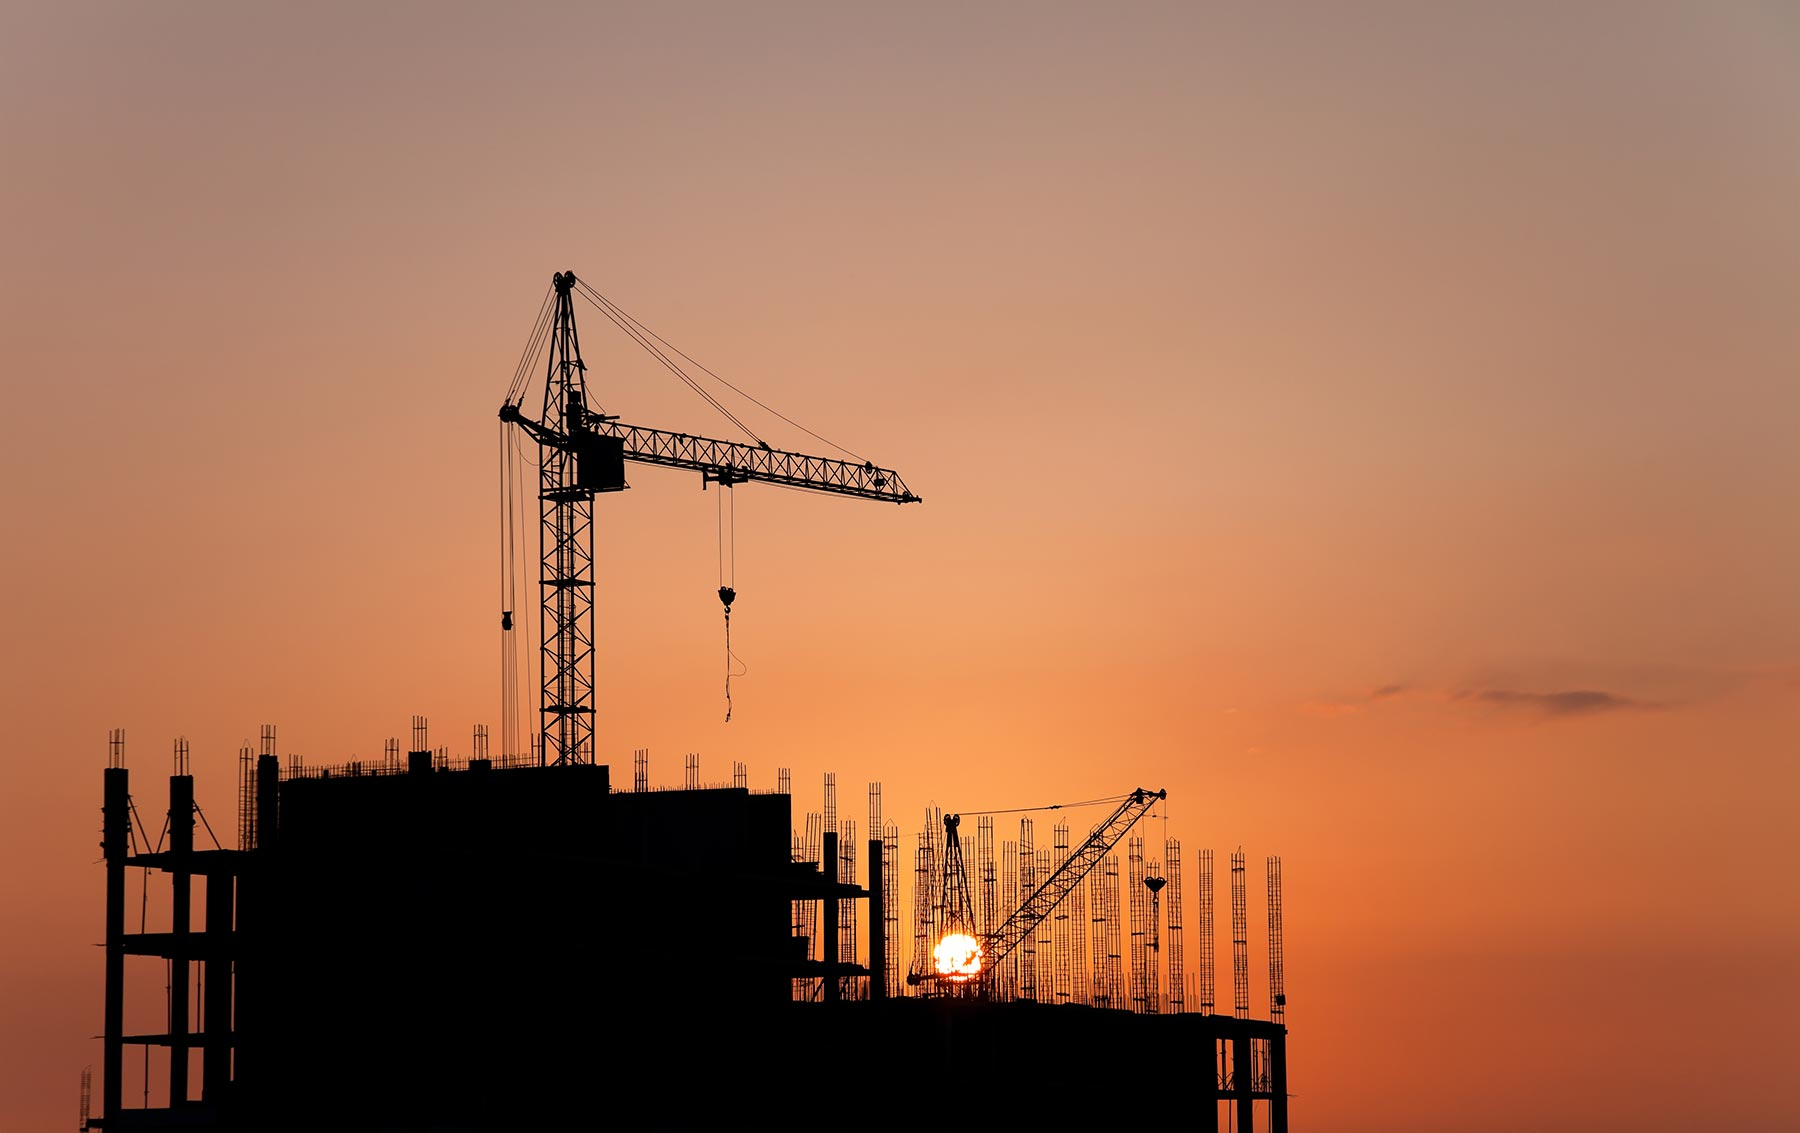 construction-cranes-and-concrete-structure-at-suns-PBLEVC8